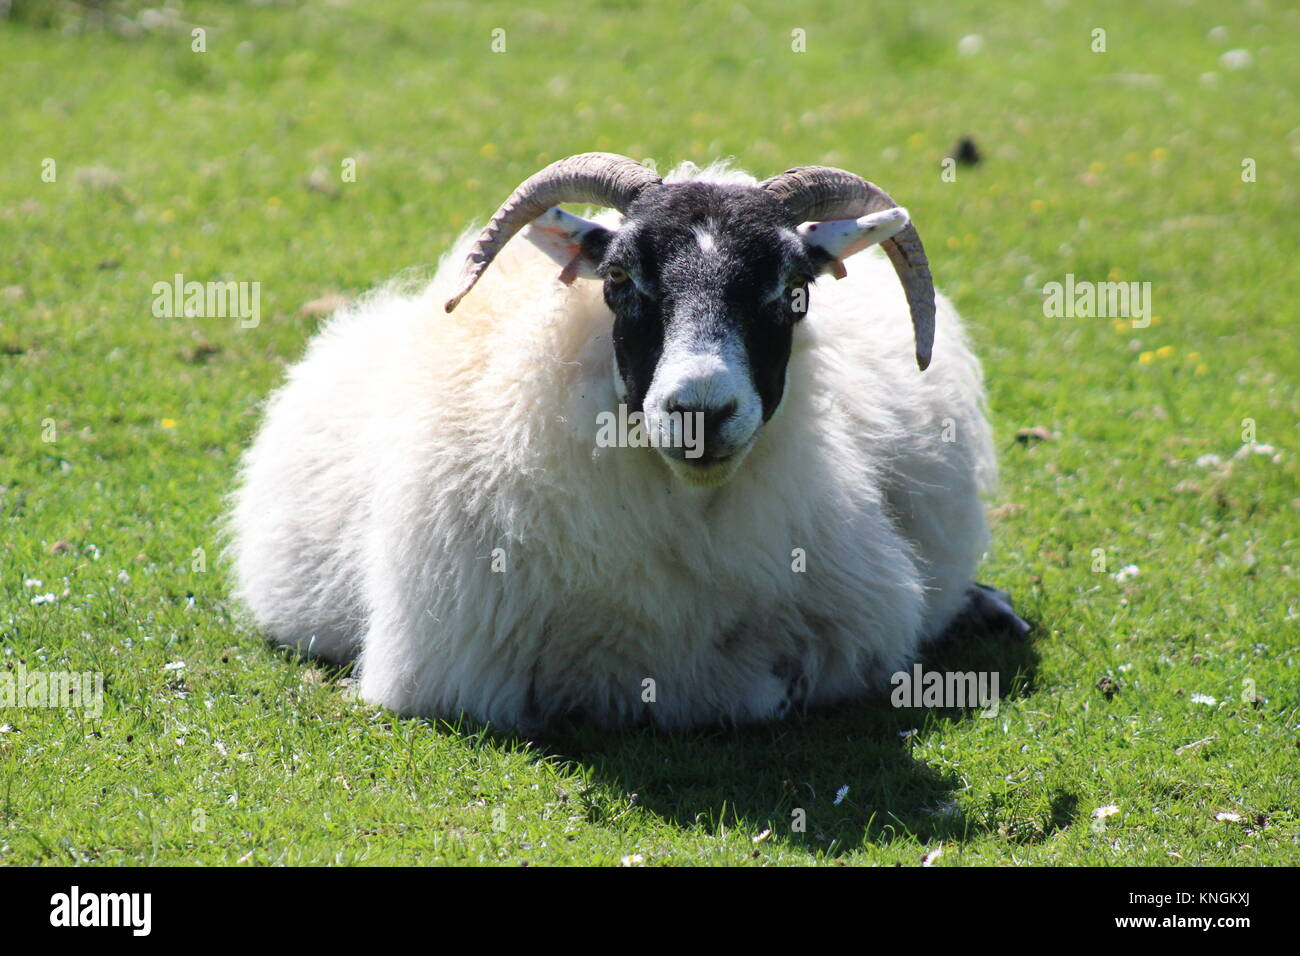 Scottish sheep having a well deserved rest on the grass. Taken in Scotland (Fort William) - Stock Image